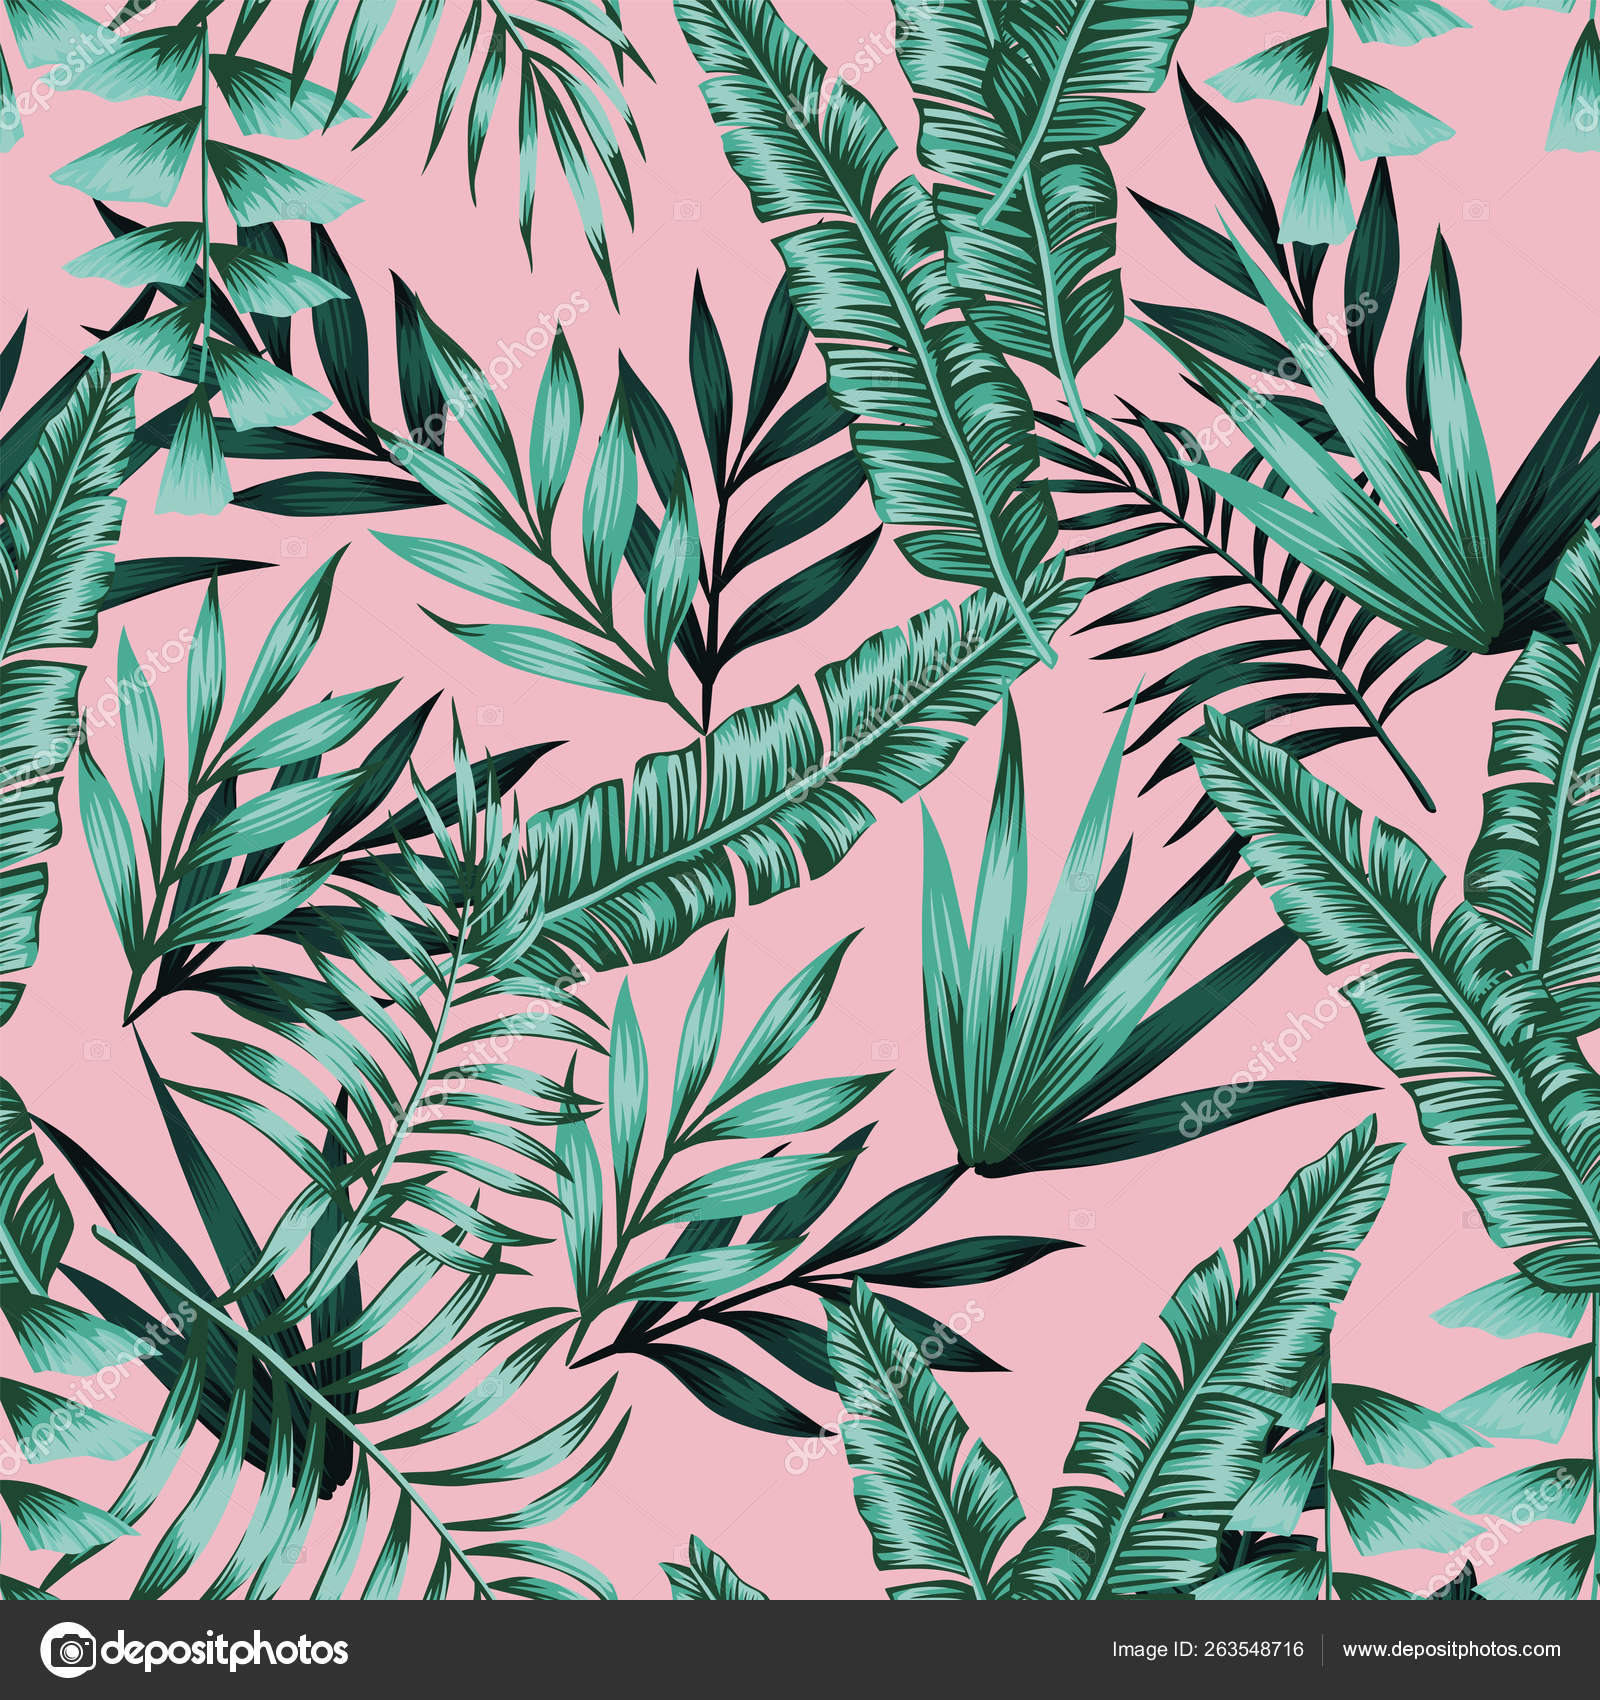 Exotic Green Tropical Leaves Seamless Pattern Pink Background Stock Vector C Berry2046 263548716 Top view of white, pink and blue paper cut palm leaves and coconut half on pink background, panoramic shot. exotic green tropical leaves seamless pattern pink background stock vector c berry2046 263548716